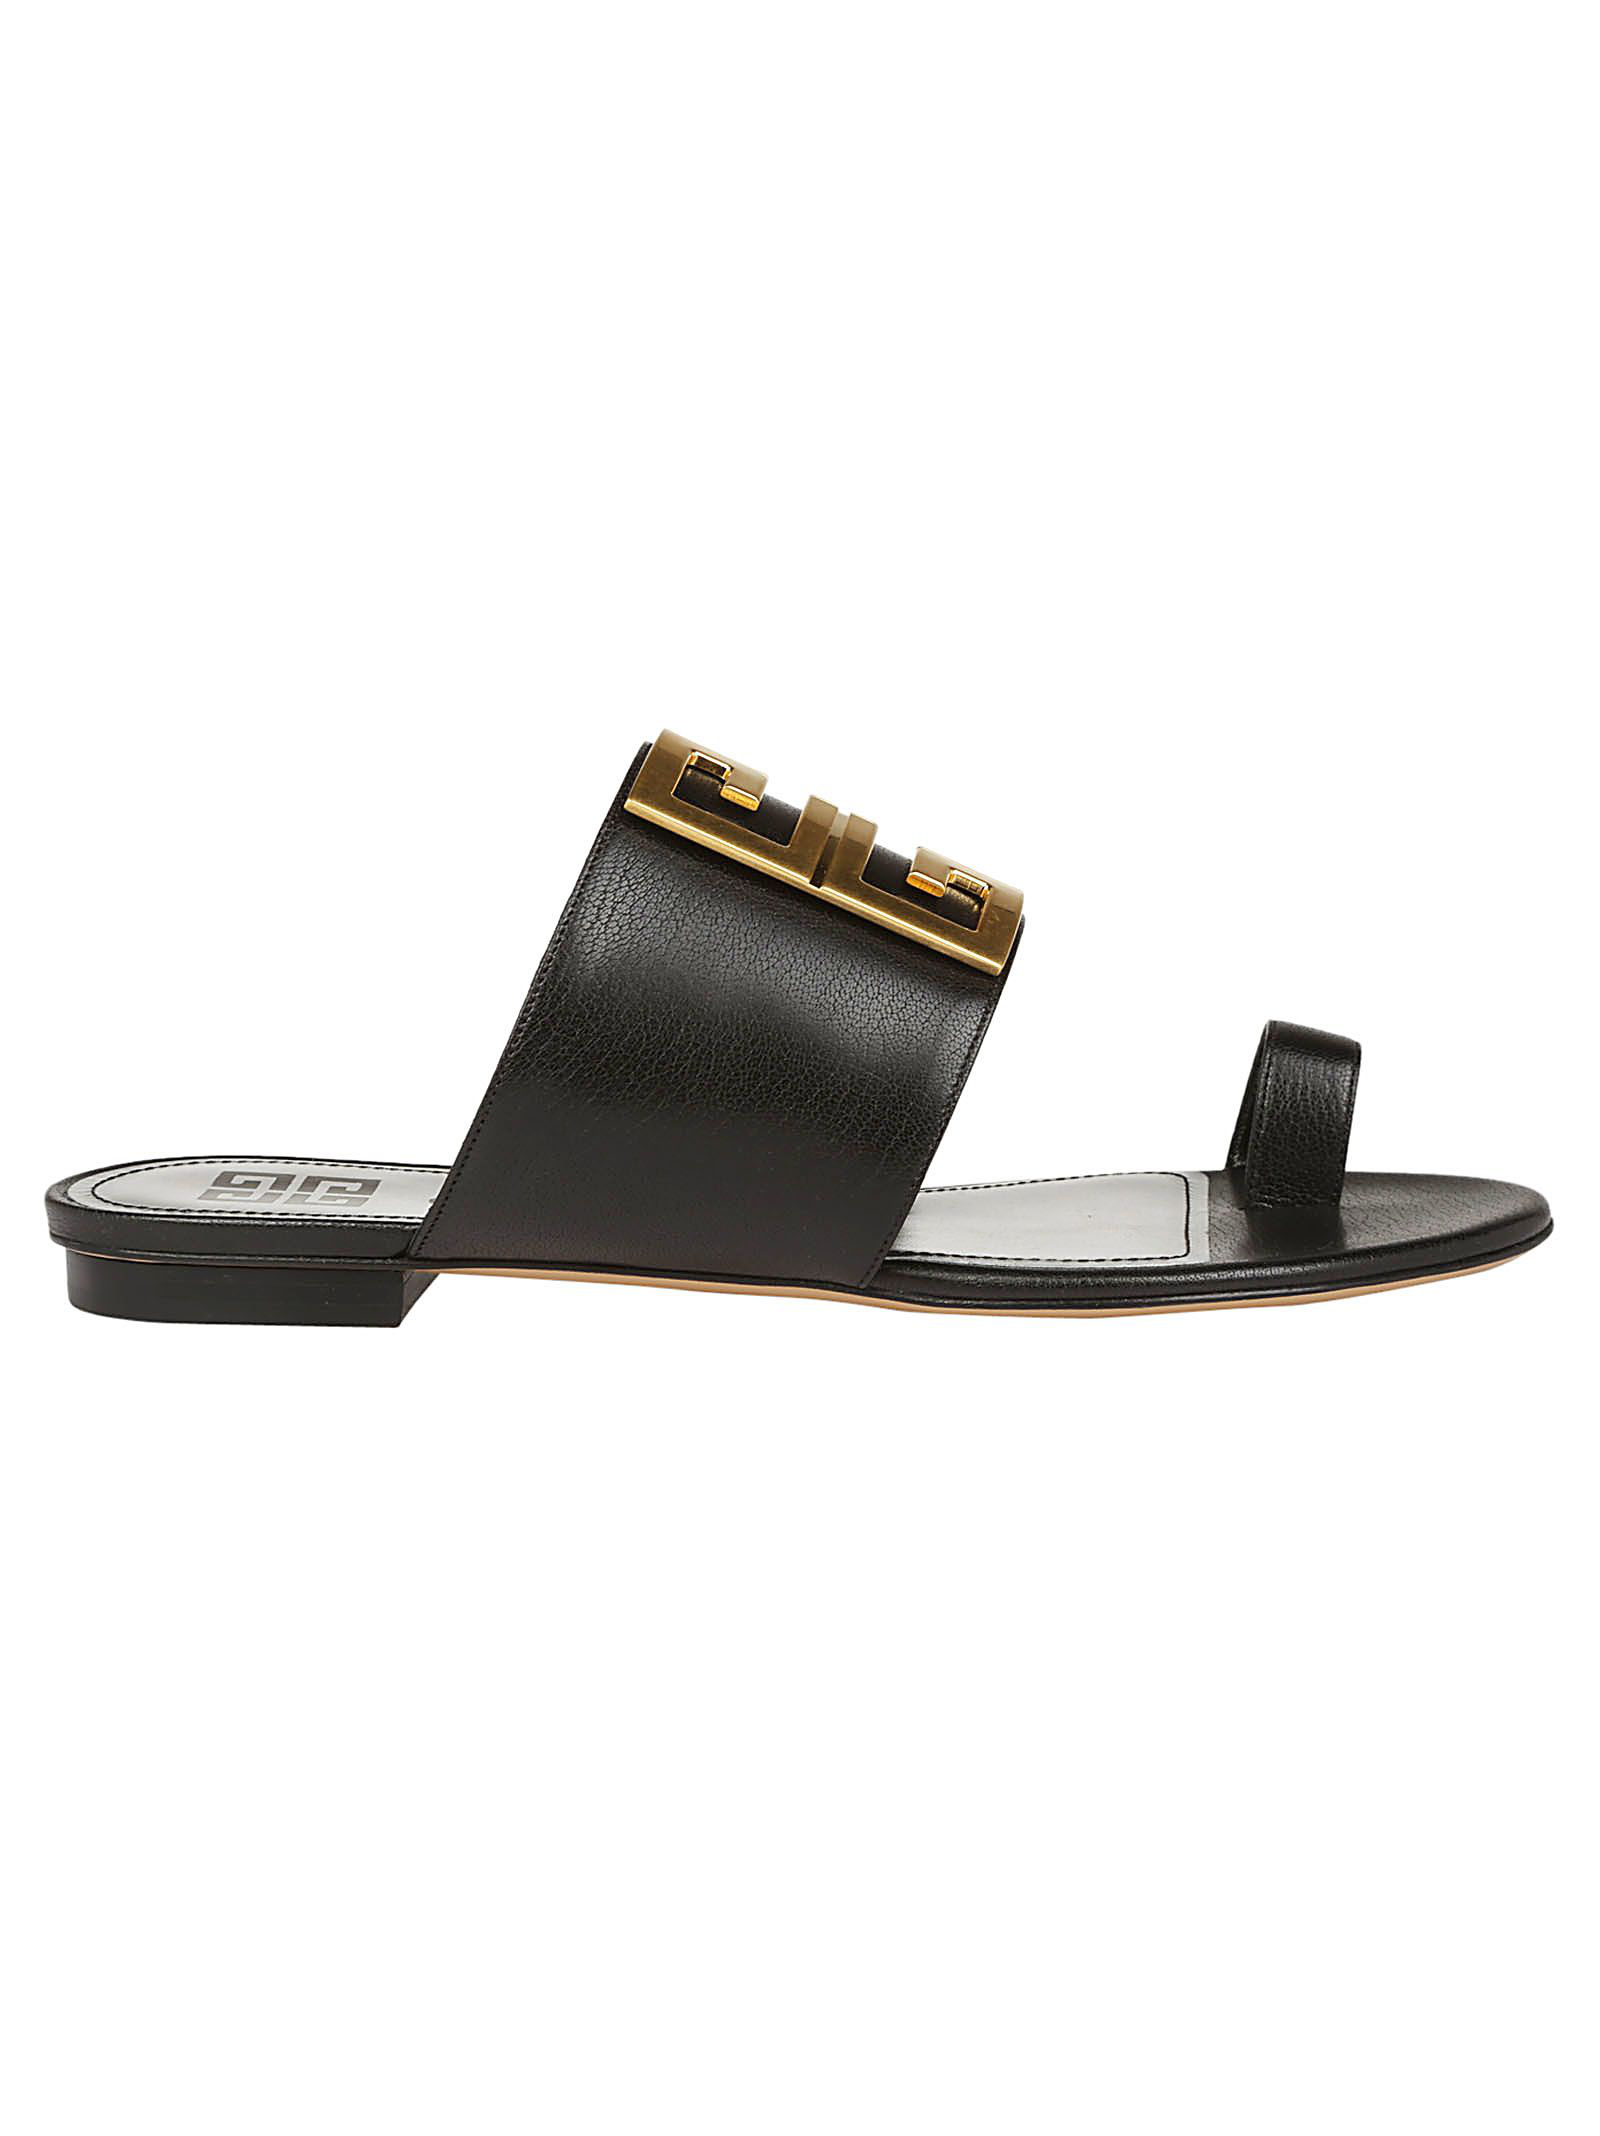 be6dfc46ab19 Givenchy Women s Be3025E05V001 Black Leather Sandals